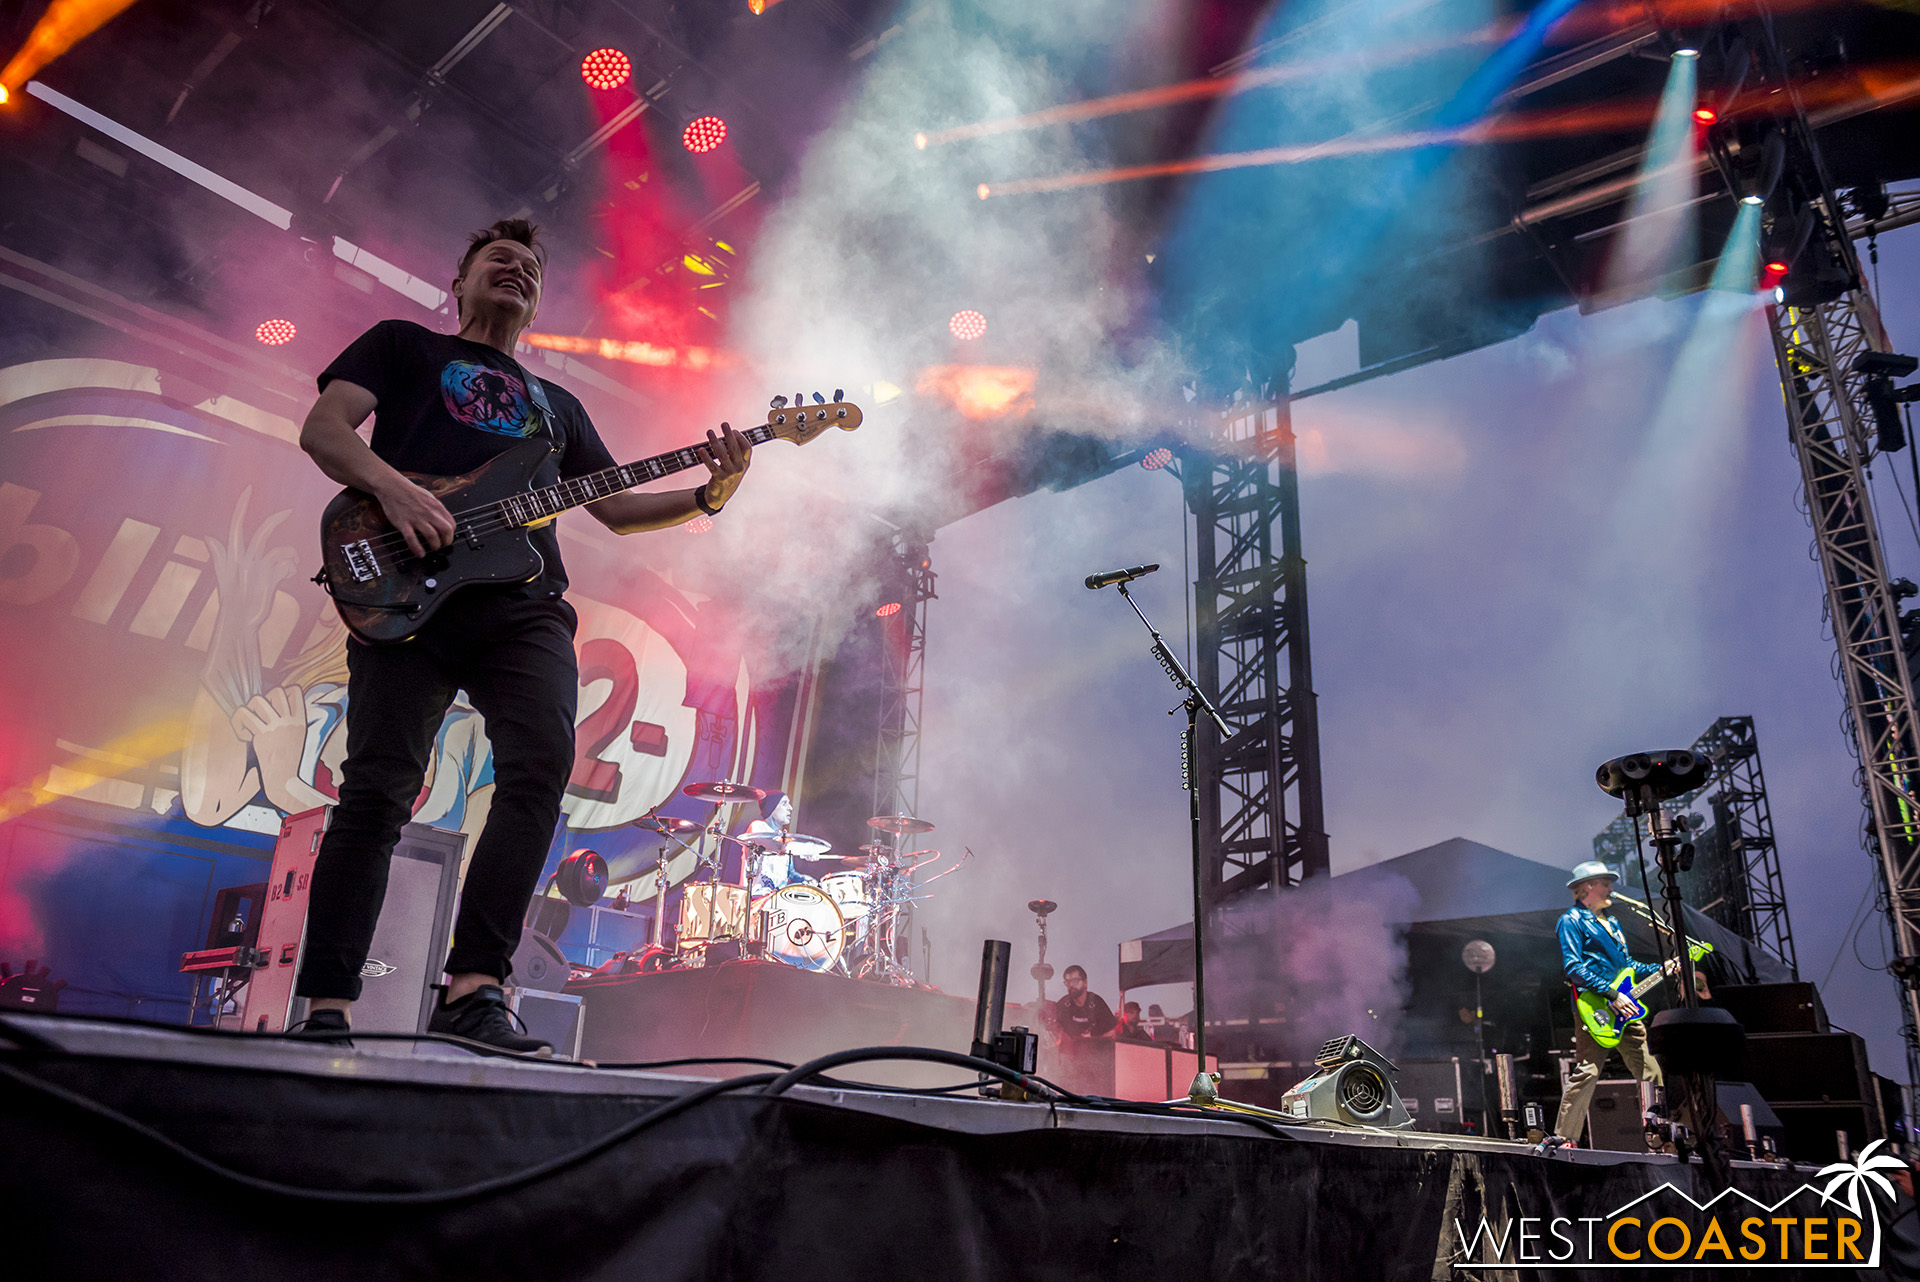 Headliners blink-182 play  Enema of the State  front to back at Back to the Beach.